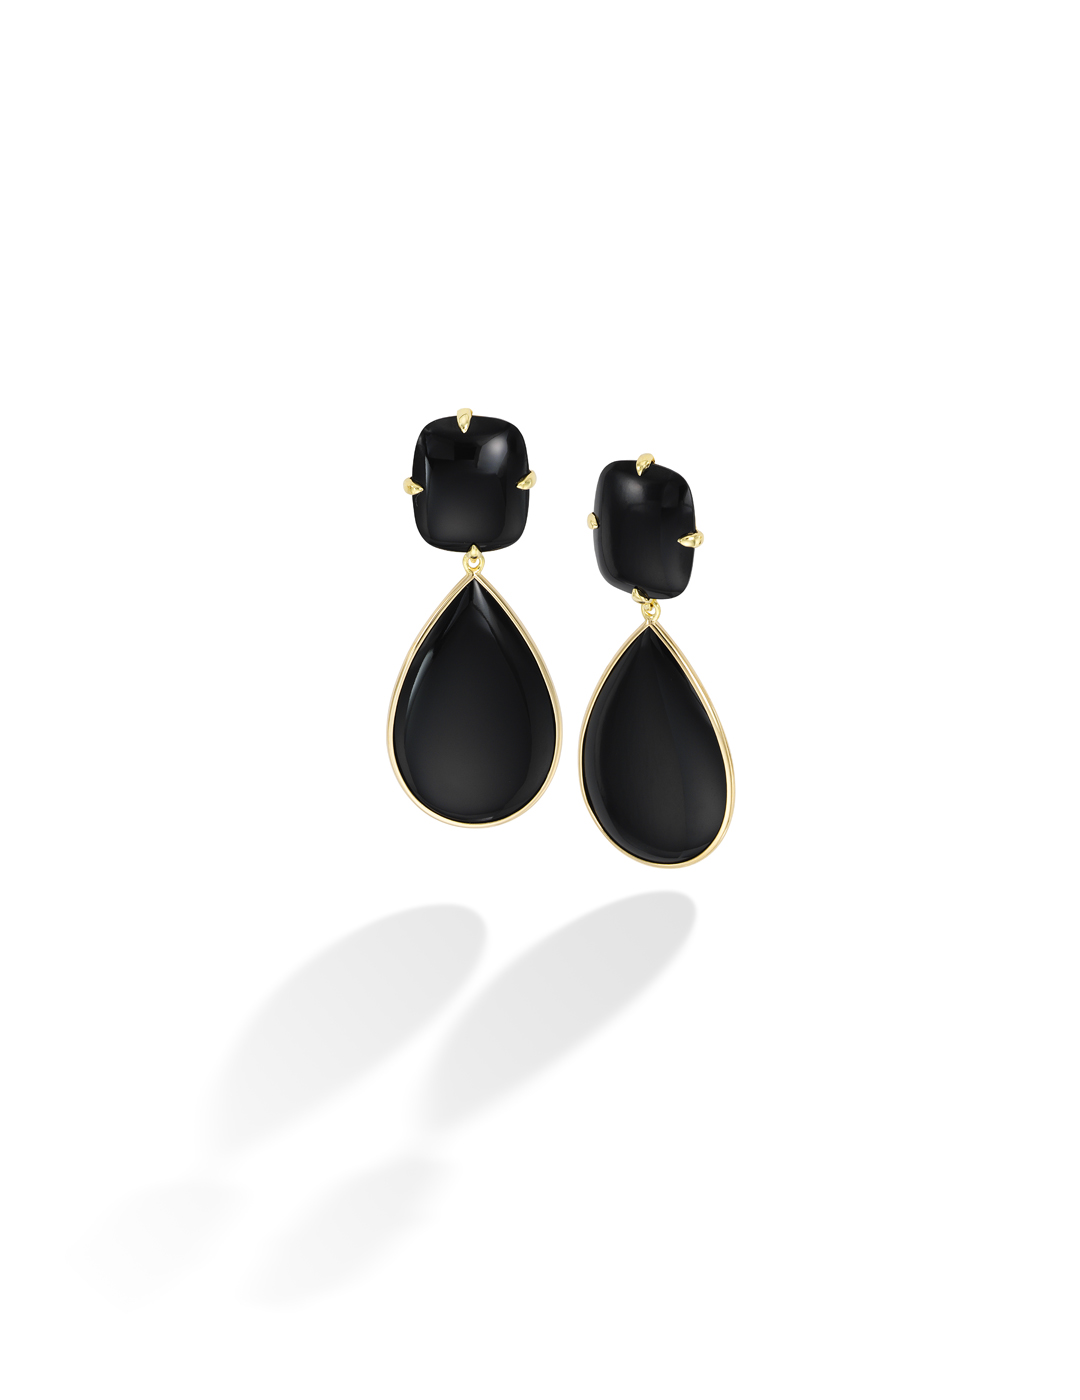 mish_products_earrings_Roadster-BlkOnyx-ER-1